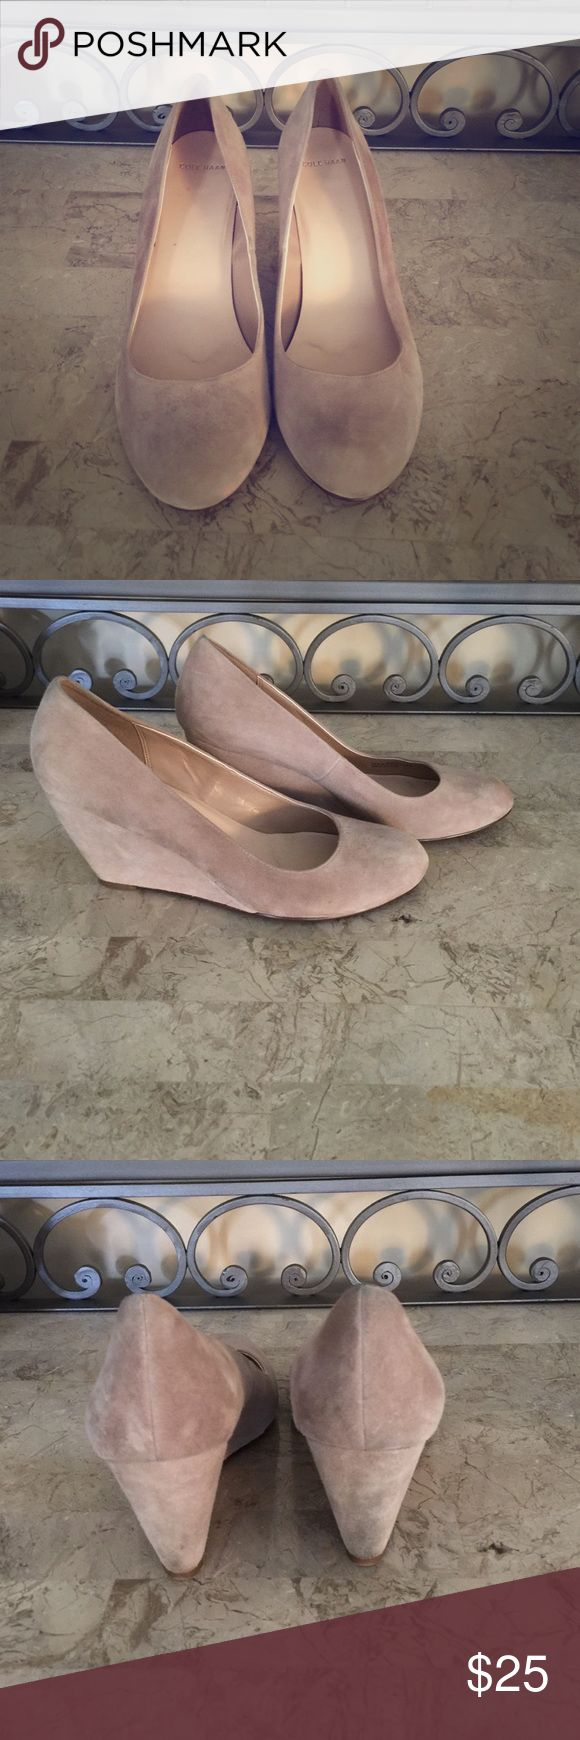 Cole Haan suede wedge heel platforms taupe Gently used. Purchased from Cole Haan outlet maybe 6 months ago. Few water spots on front and denim color rubbed off on back heels. Only worn a few times. Very cute shoes! Cole Haan Shoes Wedges